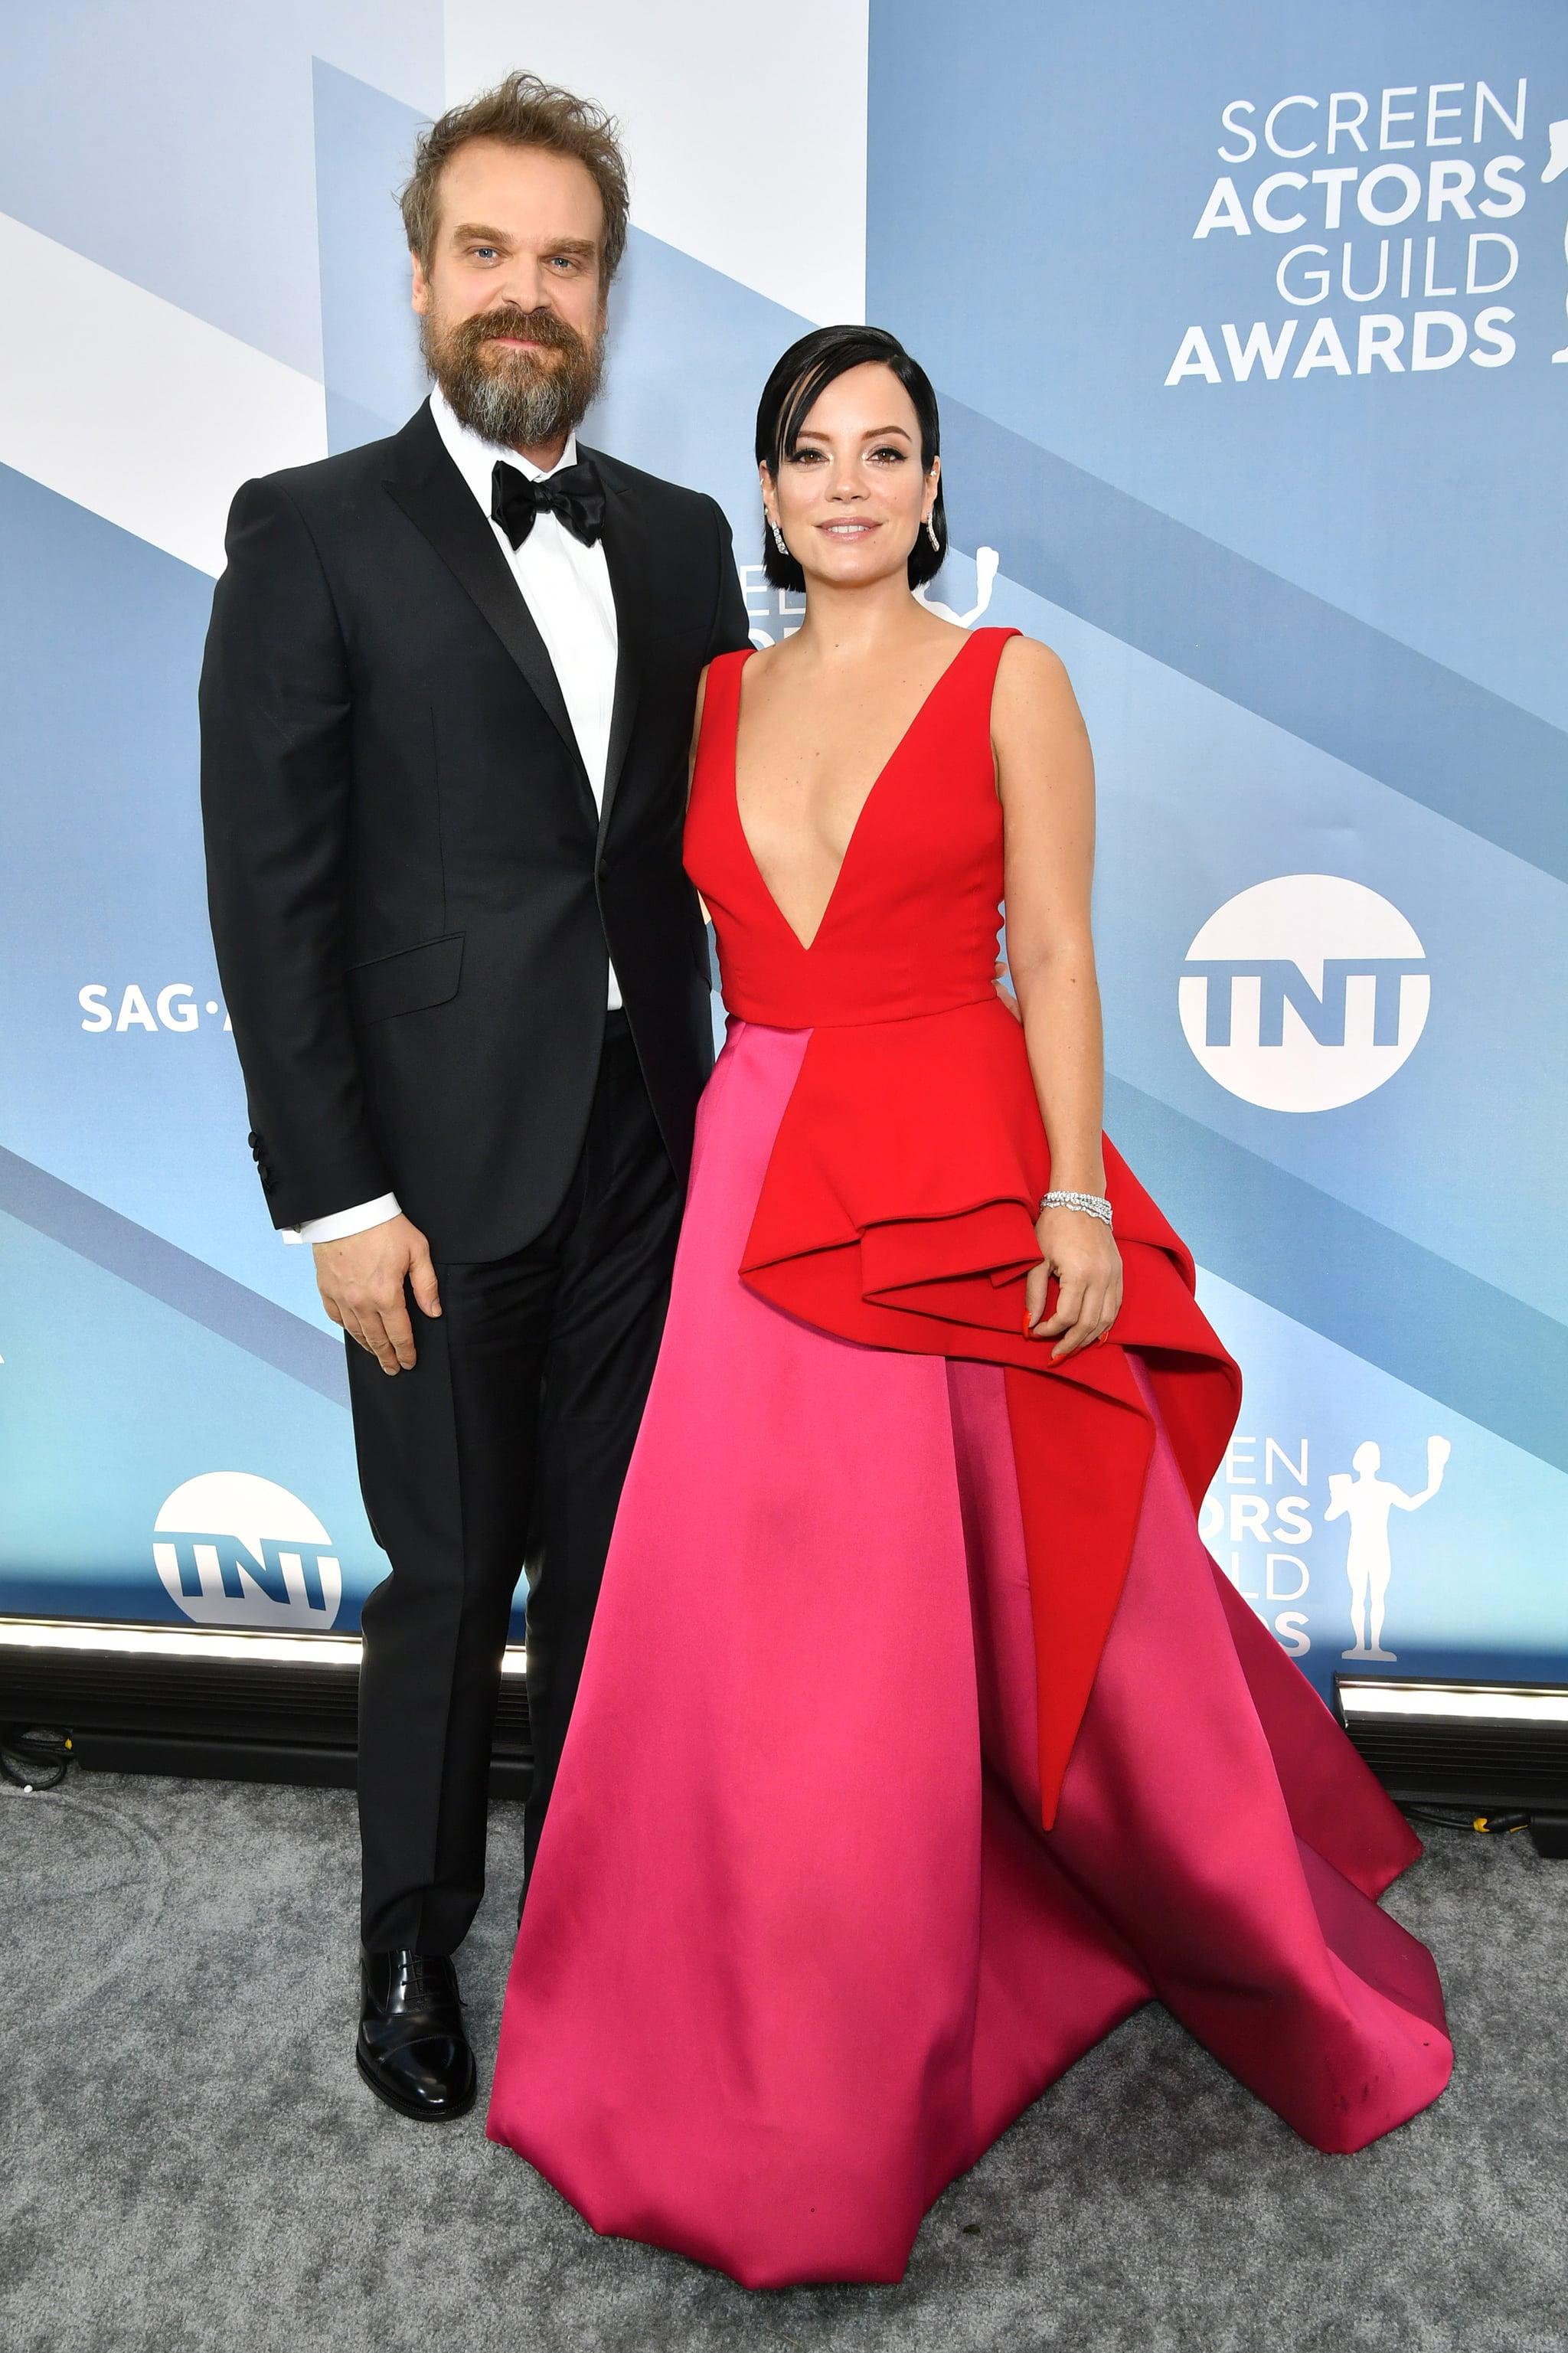 LOS ANGELES, CALIFORNIA - JANUARY 19: David Harbour and Lily Allen attend the 26th Annual Screen Actors Guild Awards at The Shrine Auditorium on January 19, 2020 in Los Angeles, California. (Photo by Amy Sussman/WireImage)